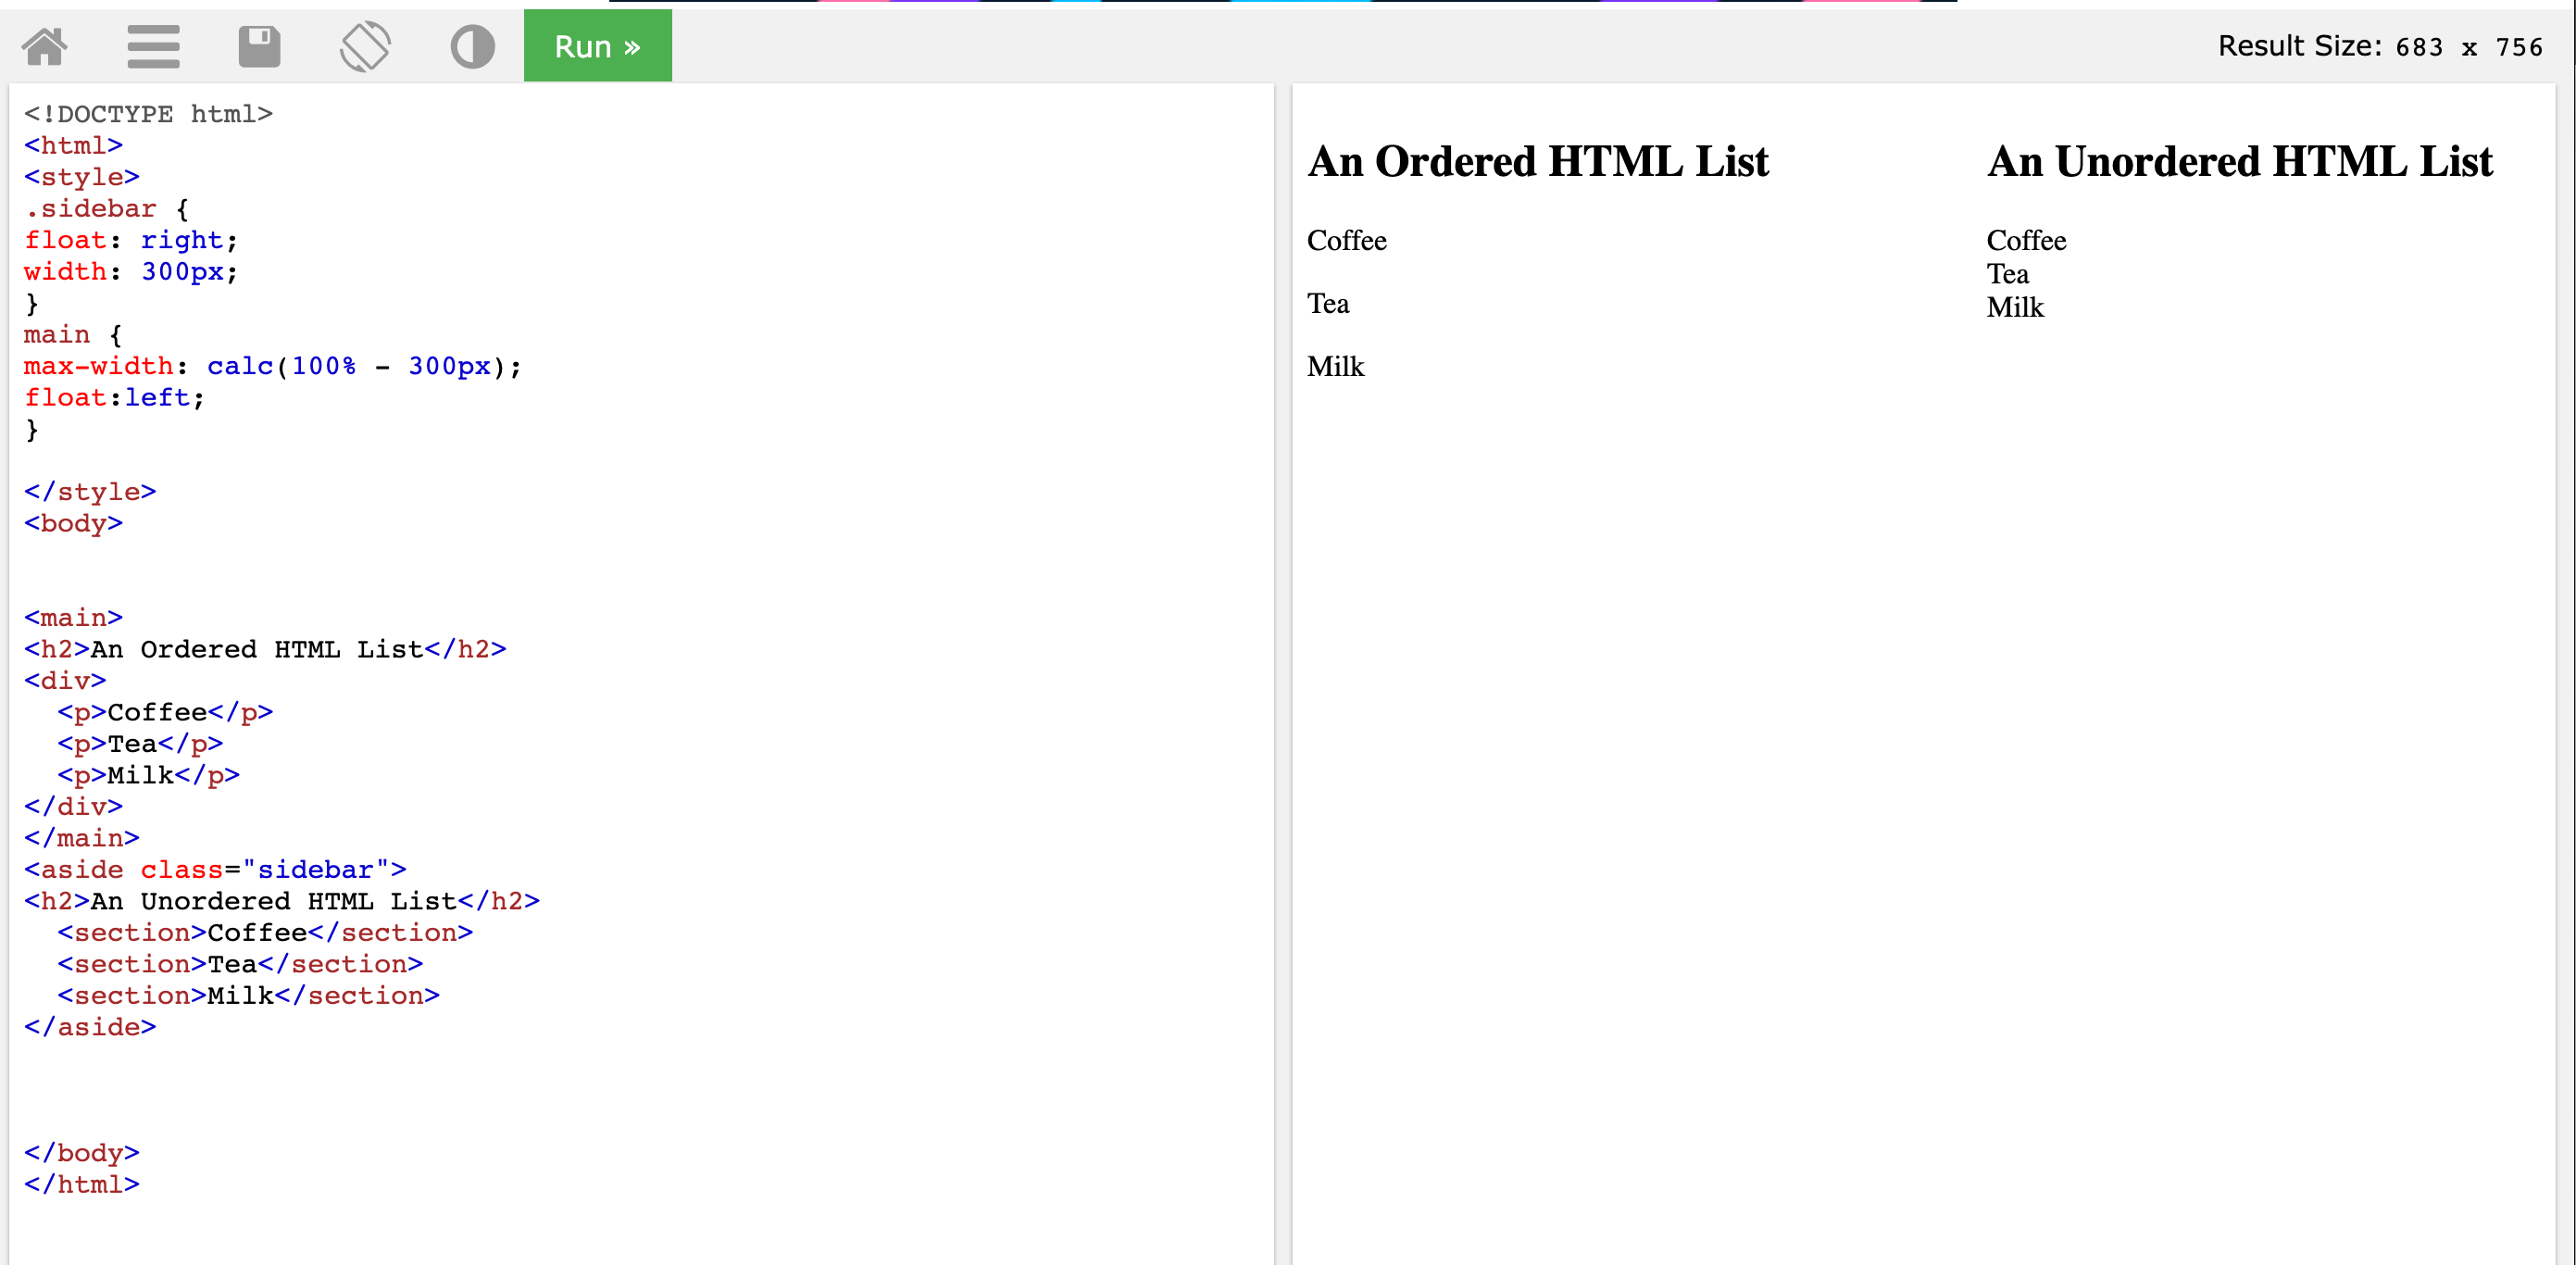 On the right the heading for 'an ordered html list' with that is black and the heading for 'an unordered html list is black'.